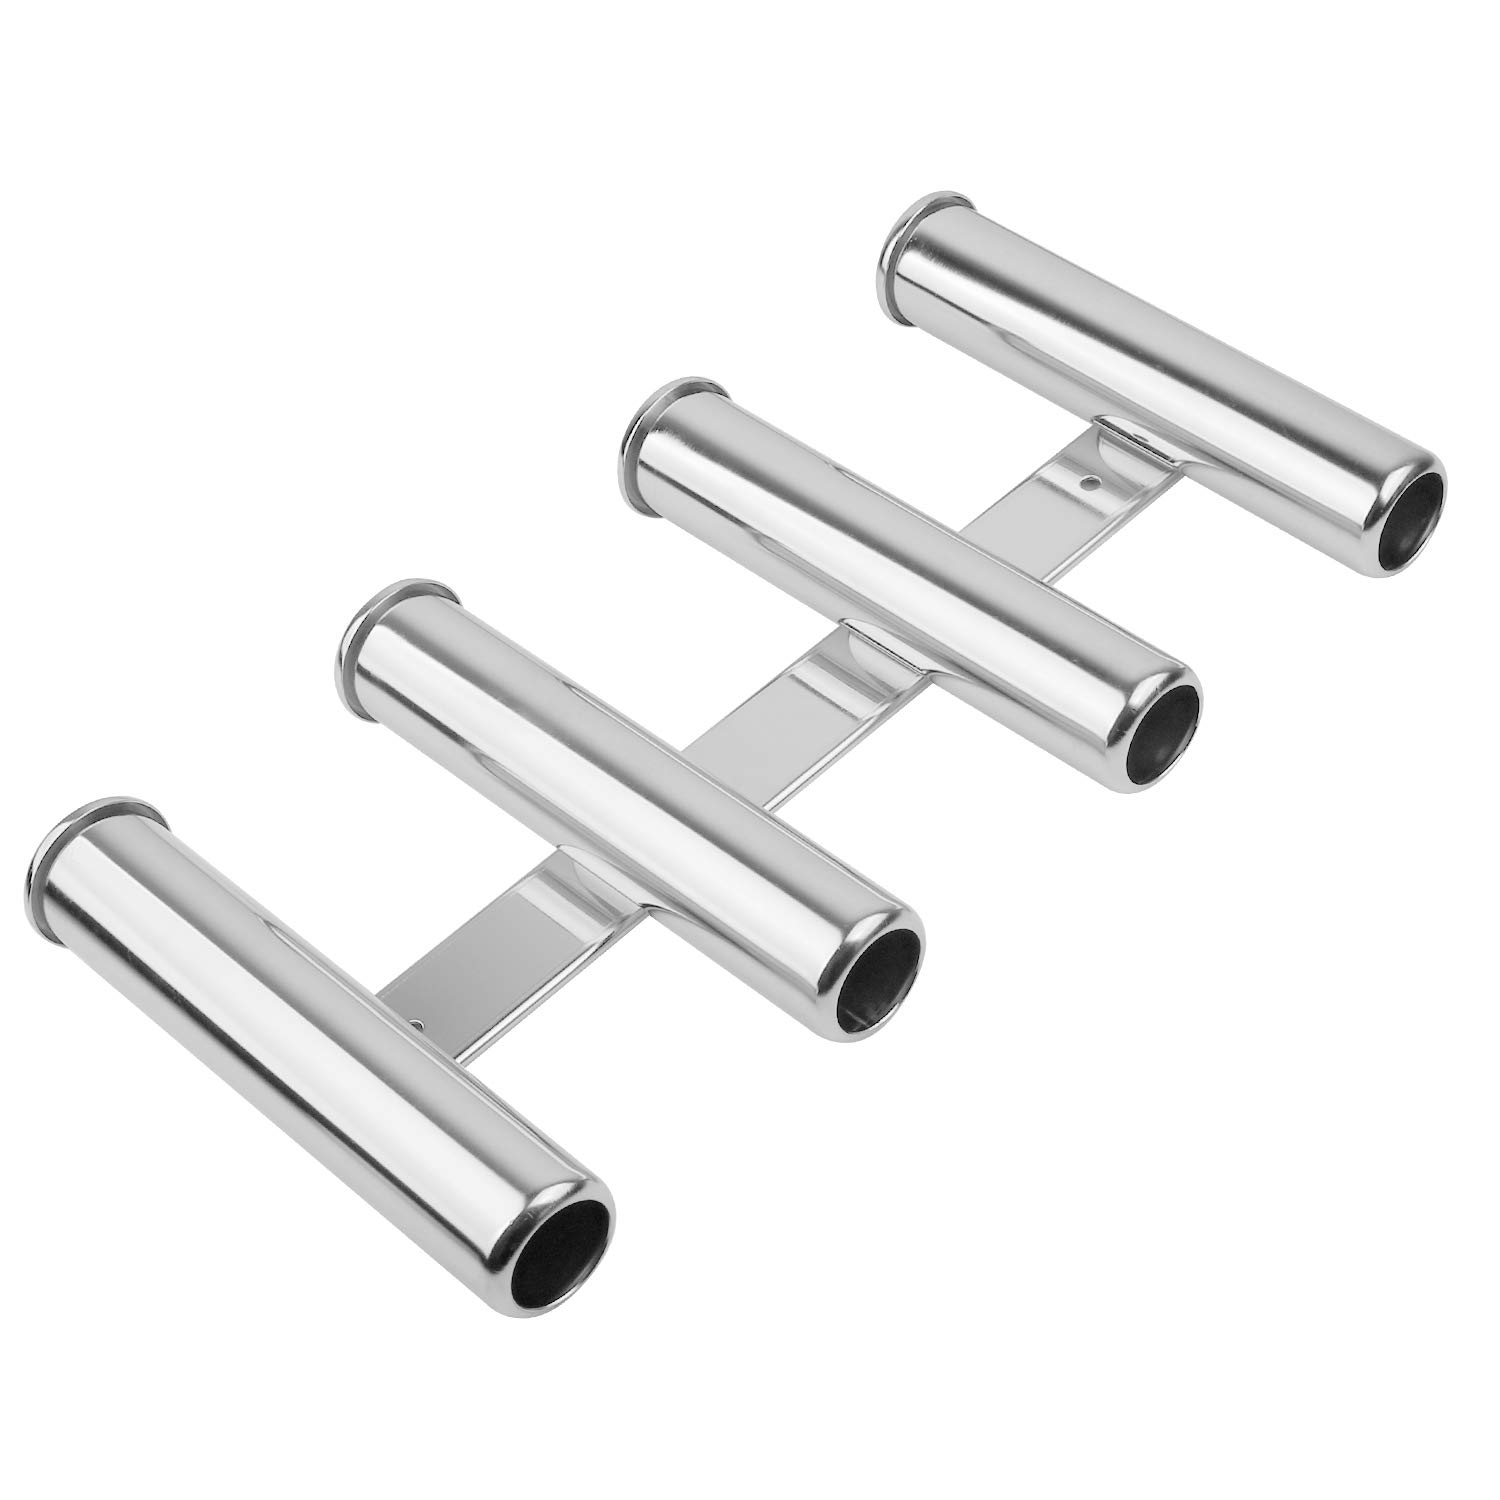 KINJOEK Fishing Rod Holder with 4 Tubes Stainless Steel Fishing Rod Rack for Marine Boat Yacht Camping RV